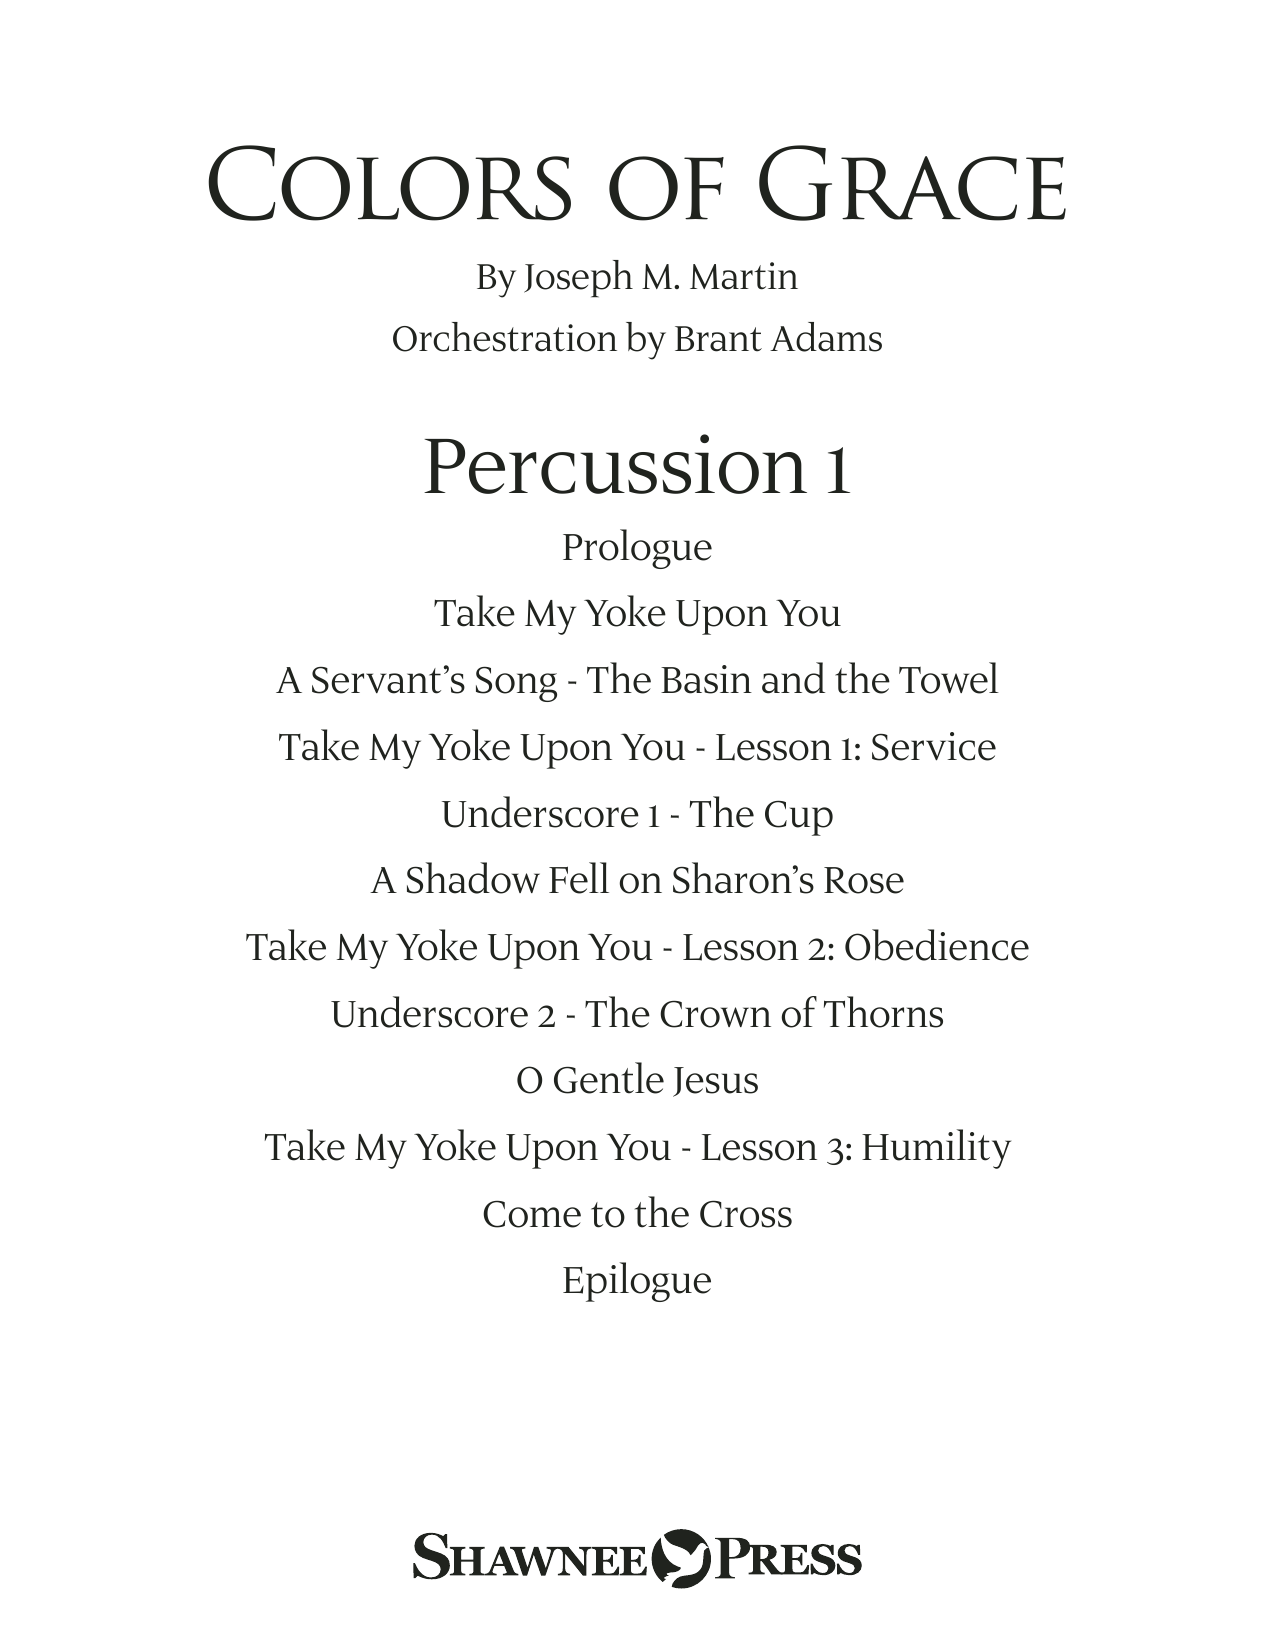 Colors of Grace - Lessons for Lent (New Edition) (Orchestra Accompaniment) - Percussion 1 (Choir Instrumental Pak)